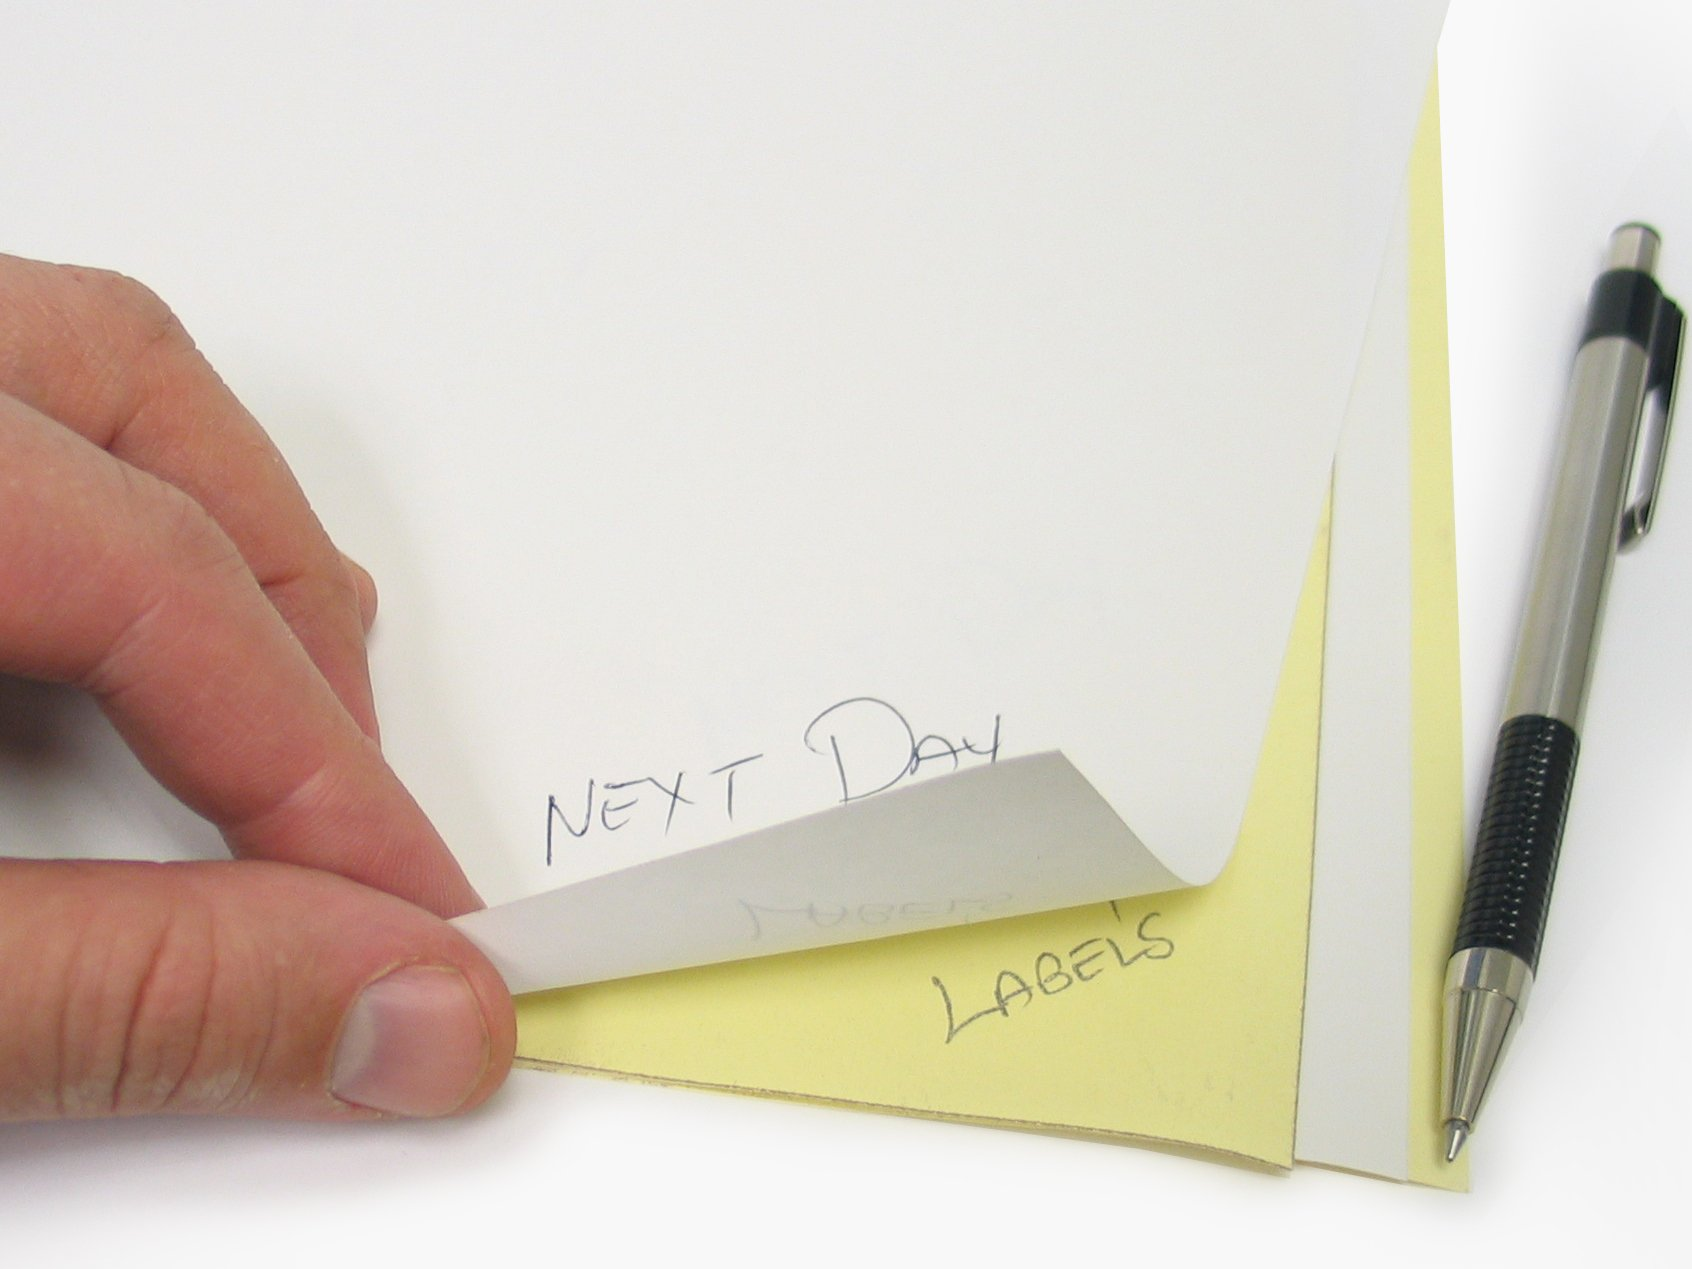 250 Sets, NCR Paper, Collated 2 Part (White, Canary), Letter Size Carbonless Paper - Rainbow Brand